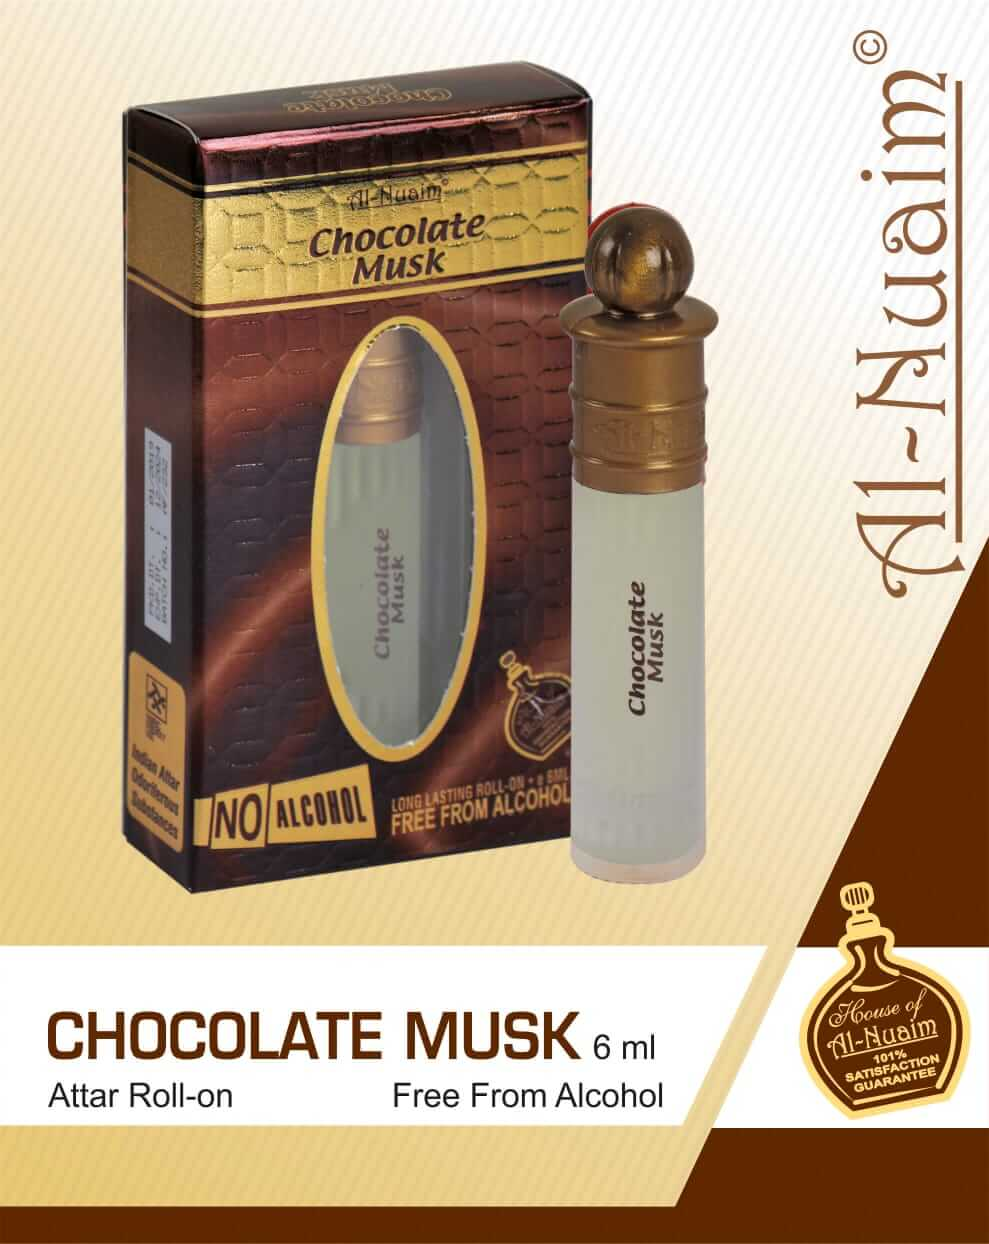 Al Nuaim Chocolate Musk Attar 6ML